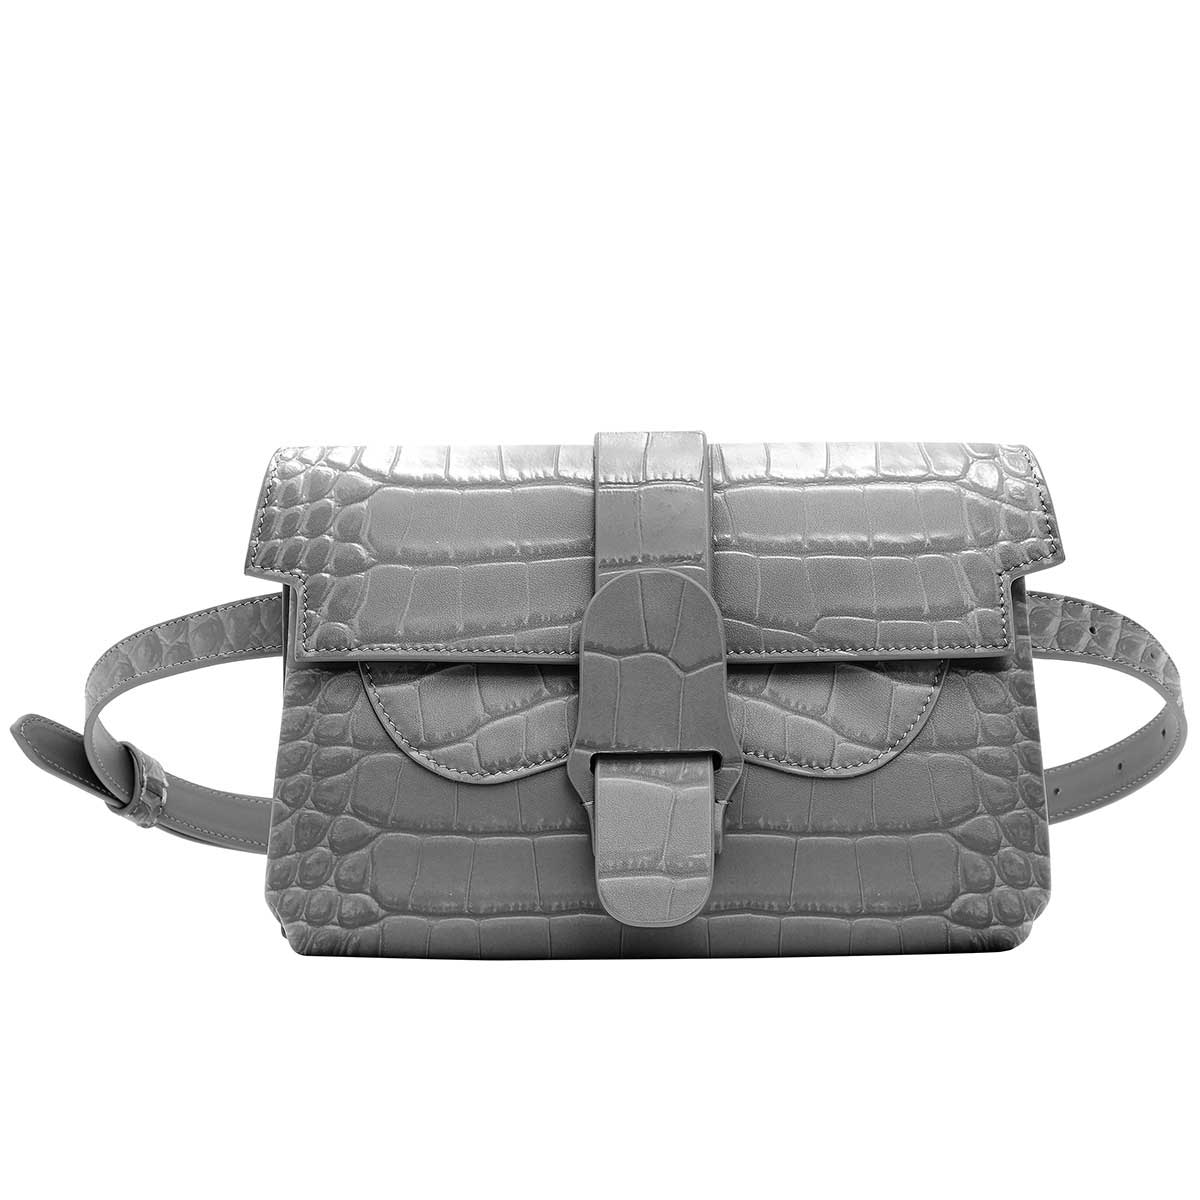 Dragon Storm Aria Belt Bag